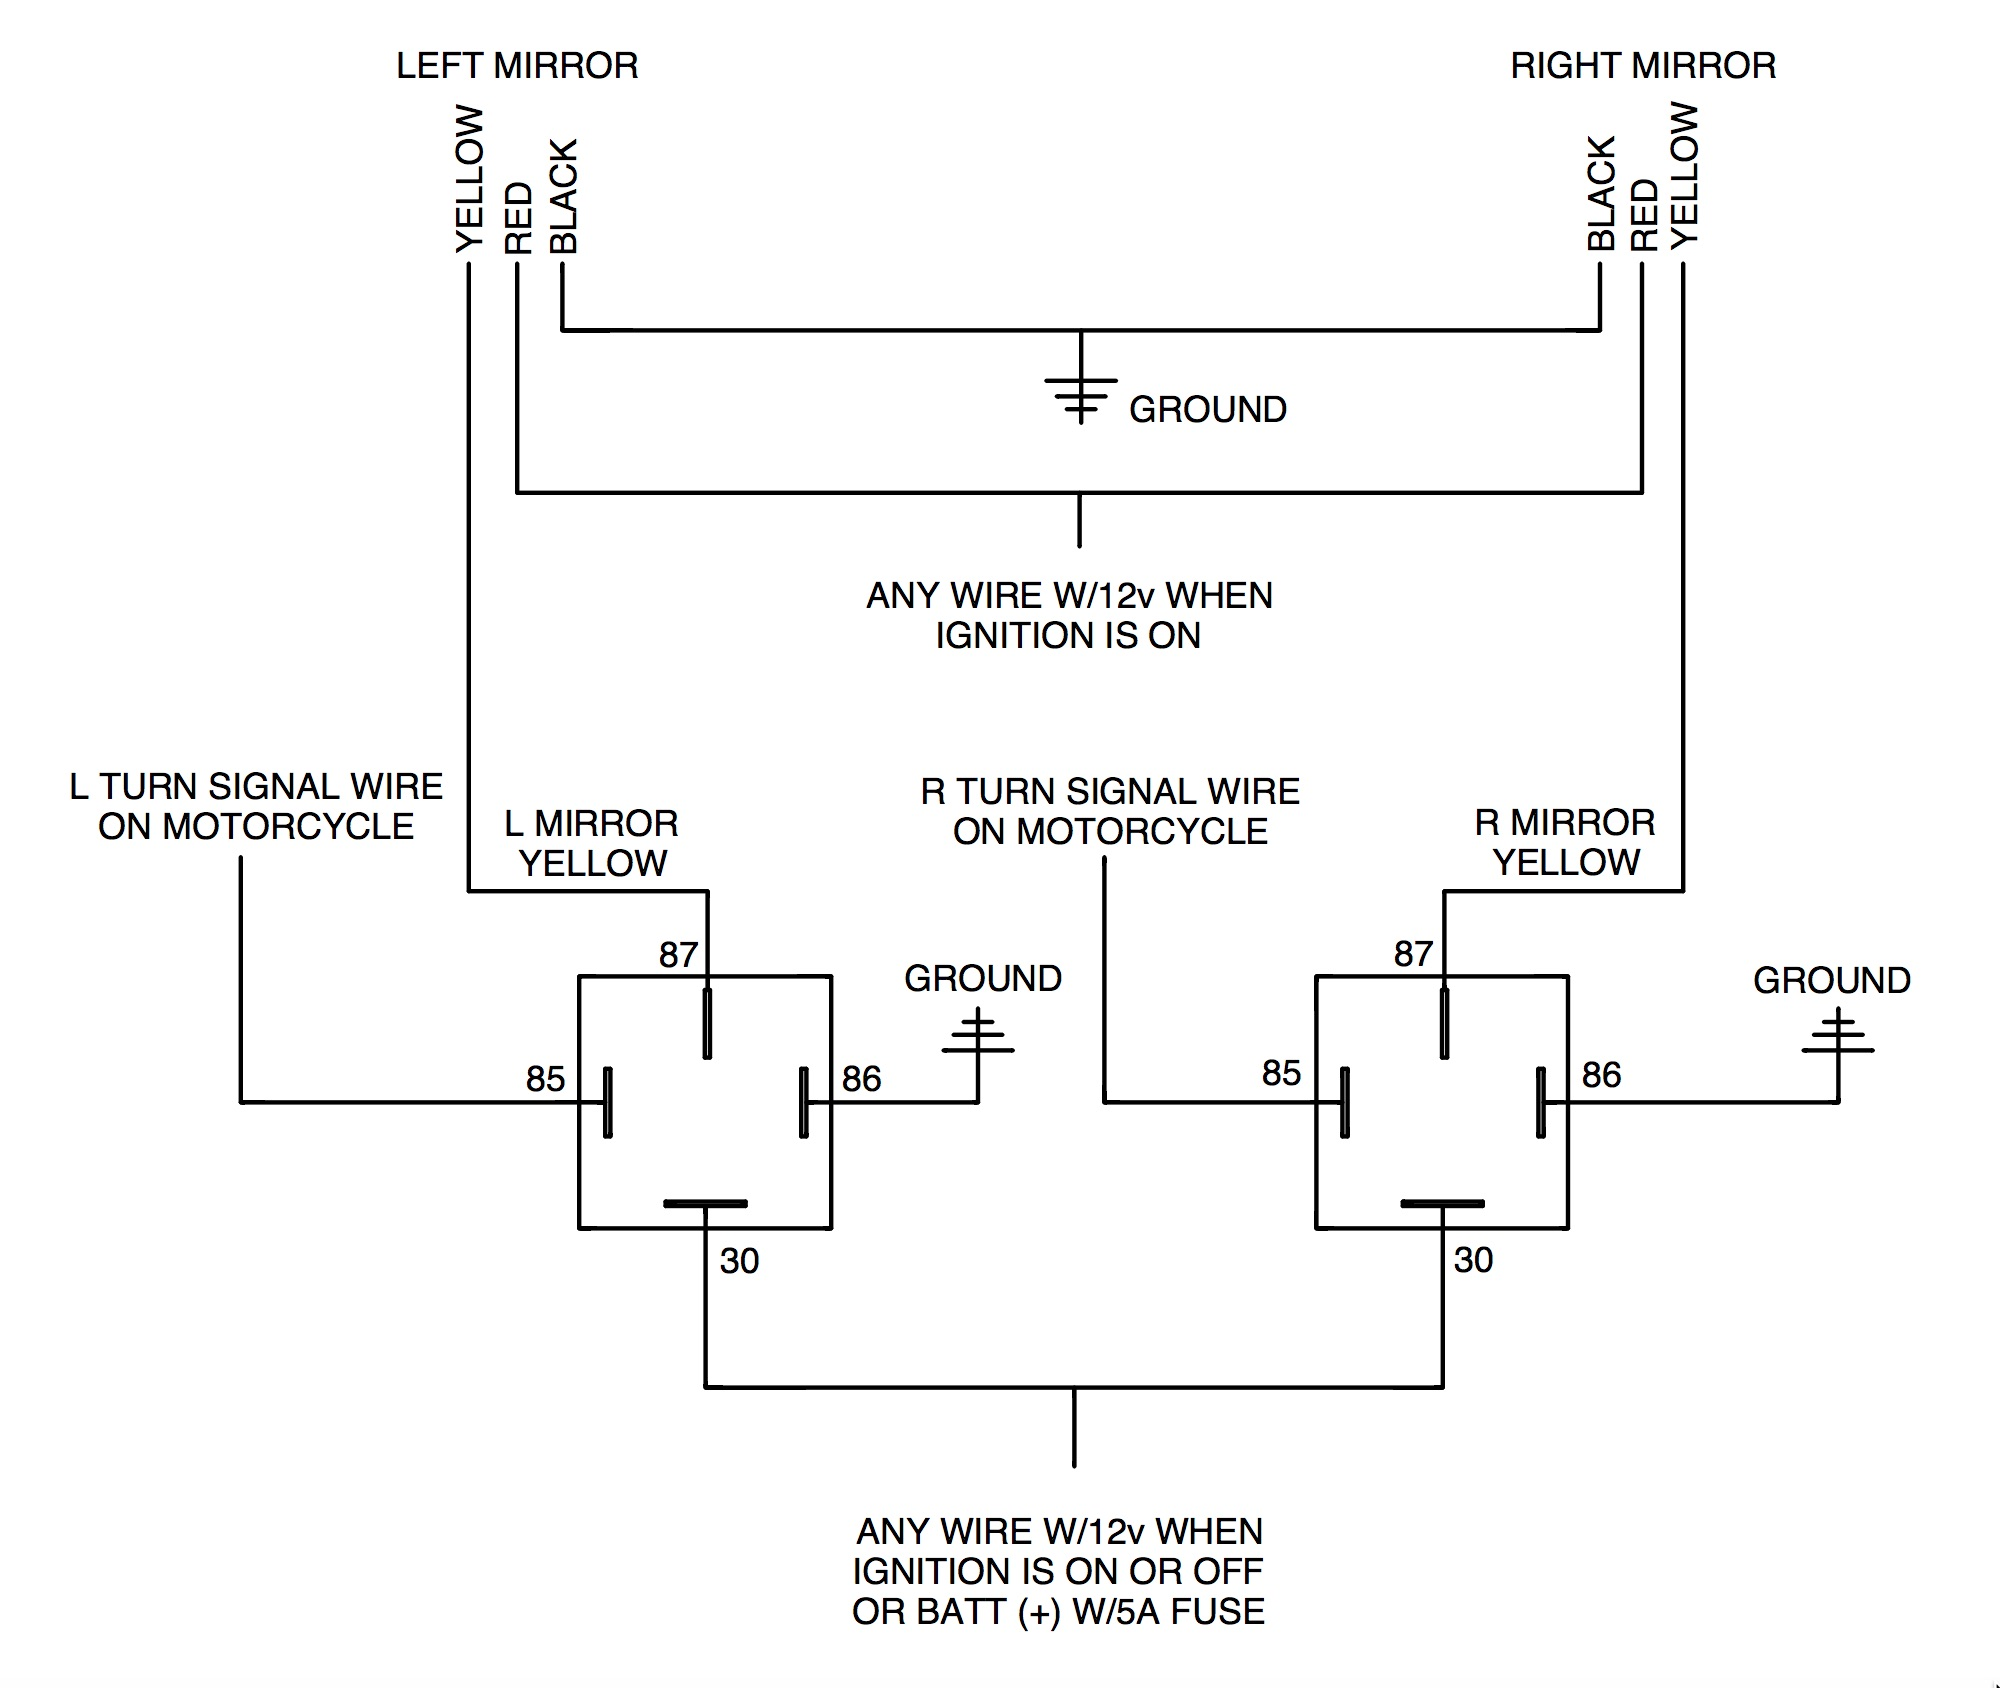 Rivco dual relay diagram adding rivco led mirrors to a victory cross country motorcycle Basic Turn Signal Wiring Diagram at mr168.co